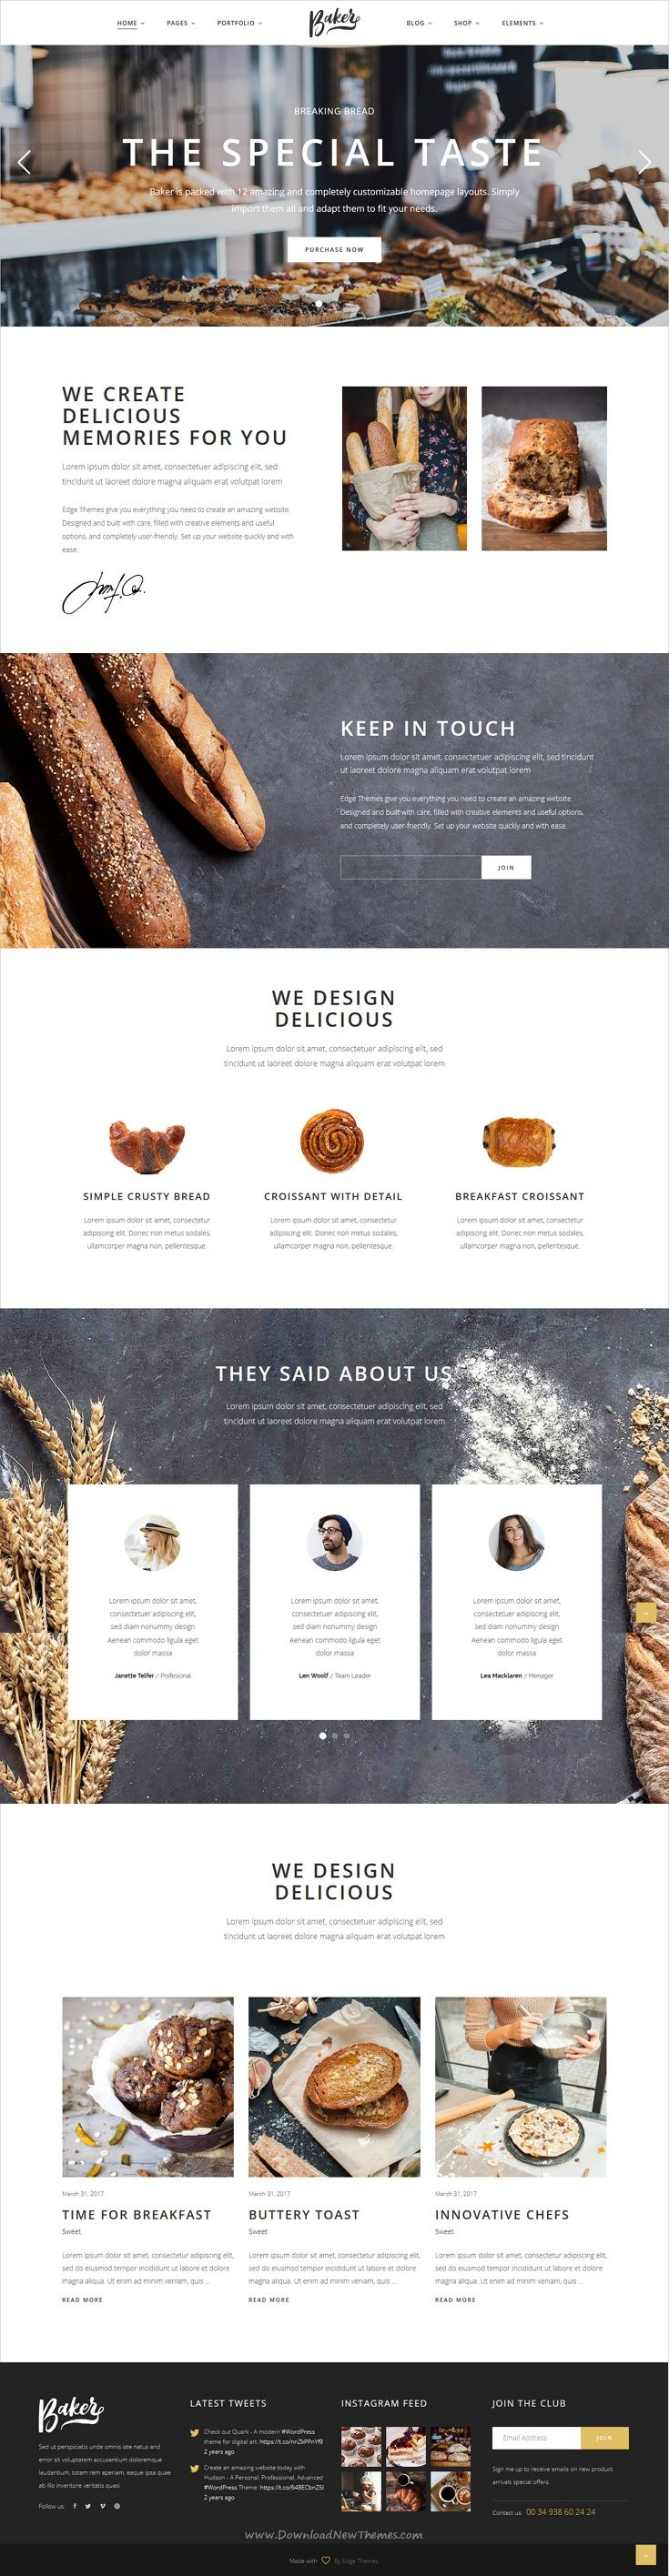 Baker is an awesome responsive #WordPress theme for #bakeries, cake #shops and pastry stores website with 12 stunning homepage layouts download now➩ https://themeforest.net/item/baker-a-fresh-theme-for-bakeries-cake-shops-and-pastry-stores/19619774?ref=Datasata